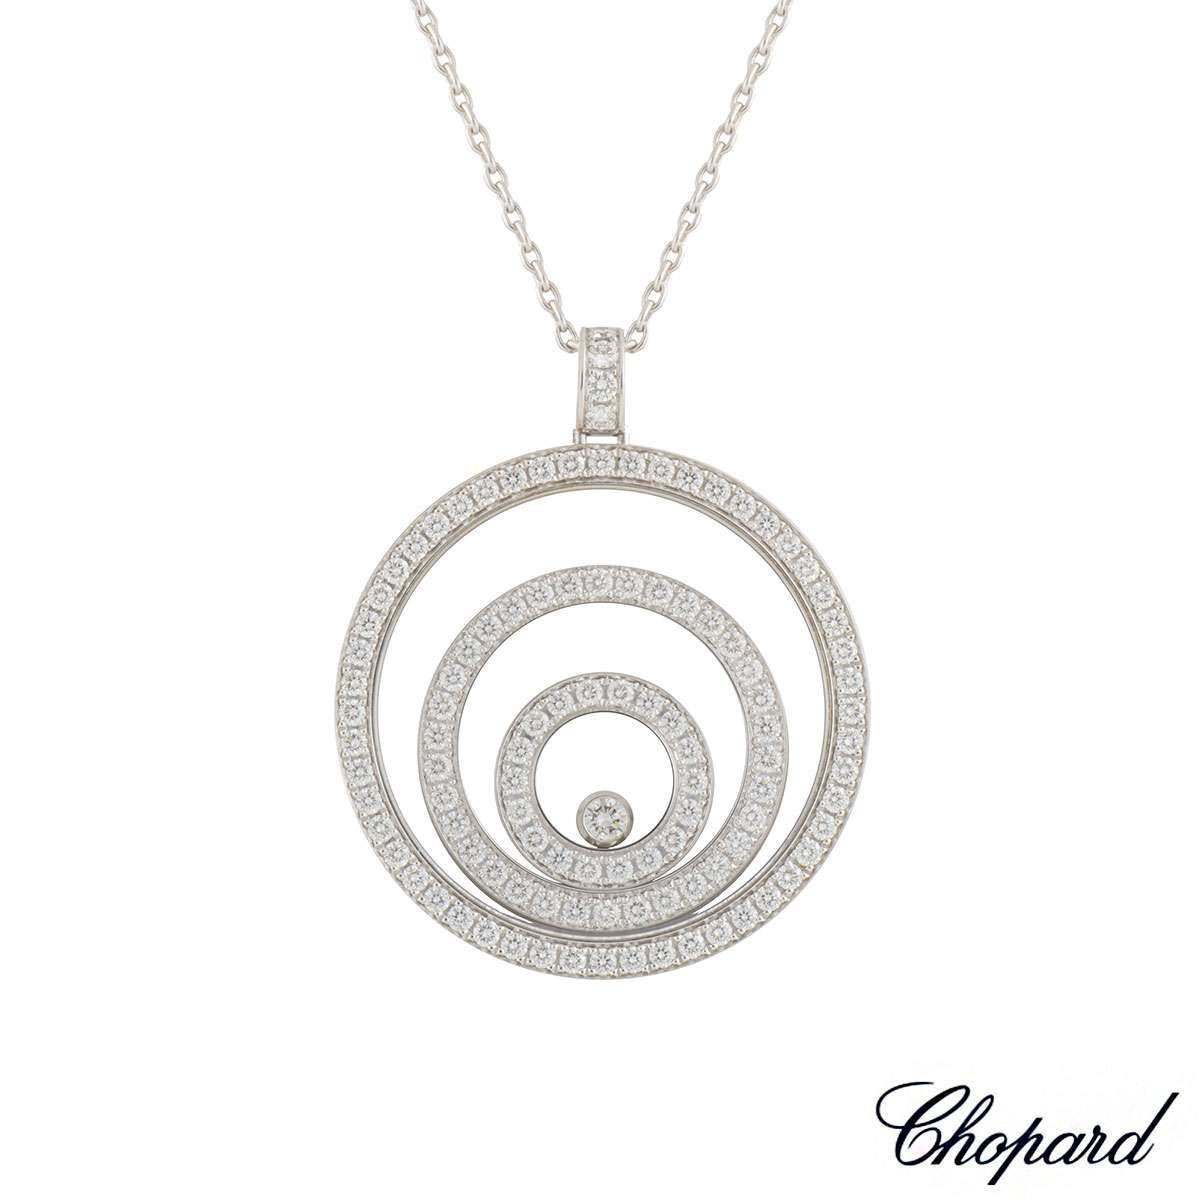 Chopard happy spirit diamond pendant 7954230 20 rich diamonds chopard happy spirit diamond pendant 7954230 20 mozeypictures